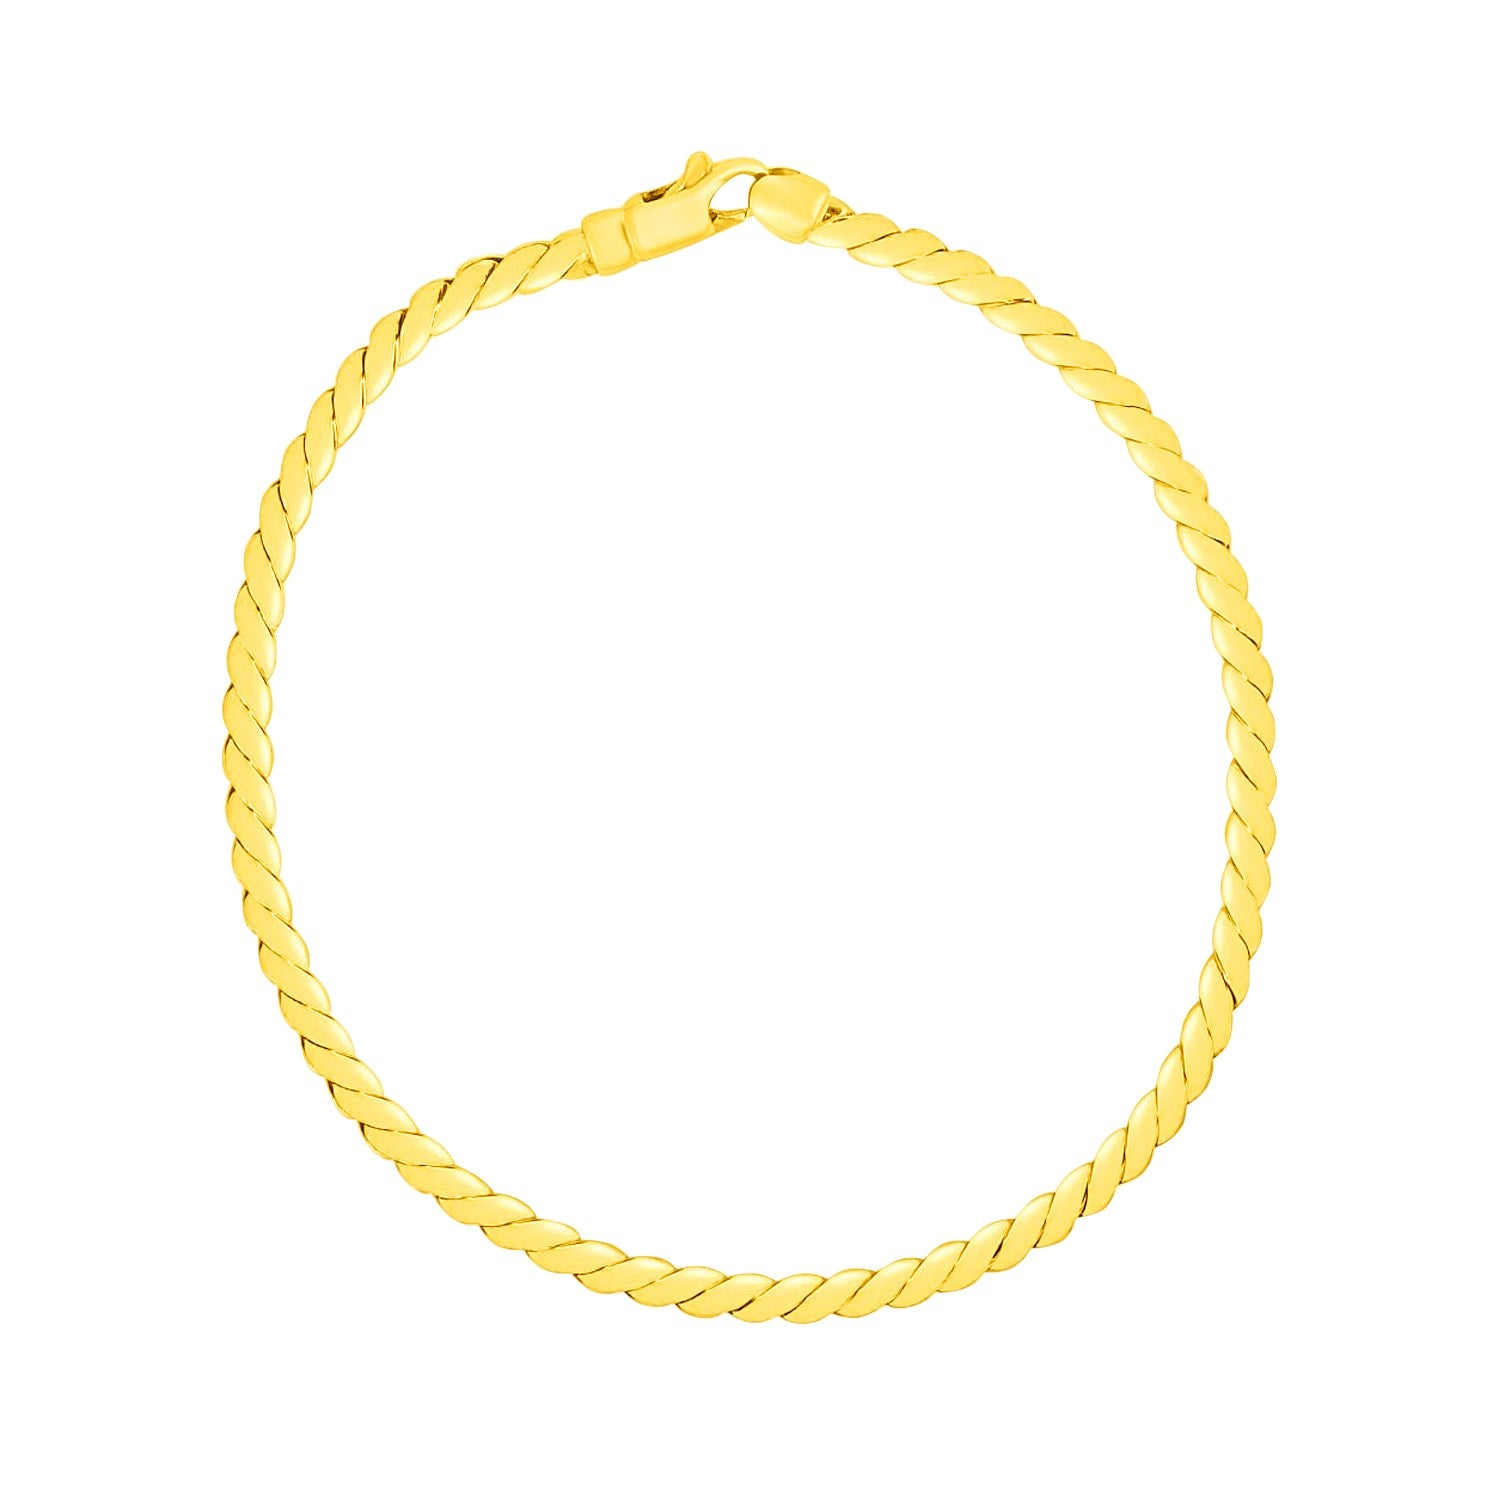 14K Yellow Gold Twisted Link Bracelet